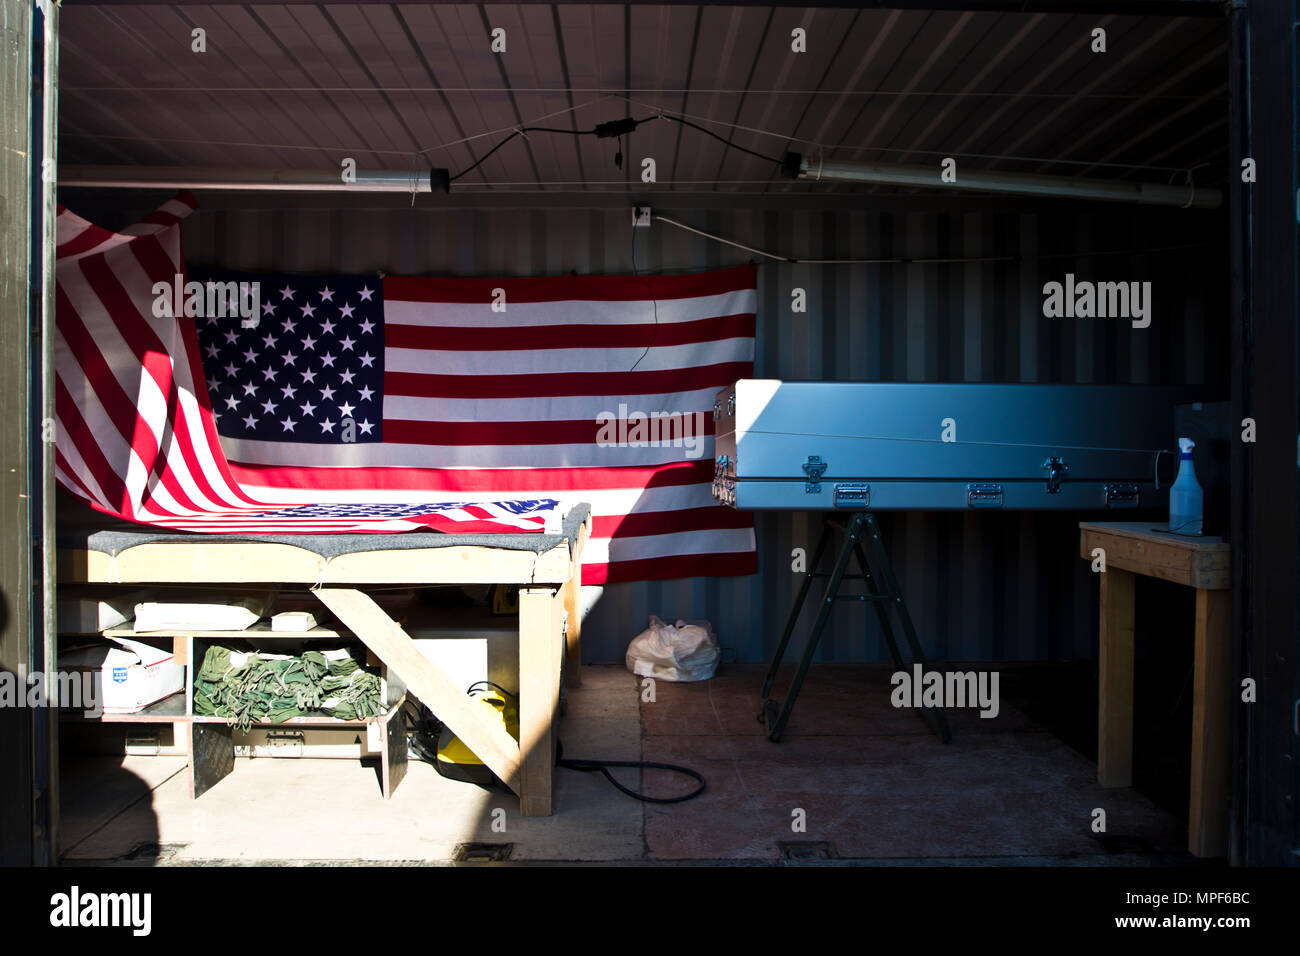 This is a container that includes a steamer and iron for removing wrinkles in flags, a rope system that can drape flags over top a transfer cases (casket) and a transfer case owned and operated by the 246th Quartermaster Company (Mortuary Affairs), in Erbil, Iraq on February 3, 2017. (U.S. Army photo by Staff Sgt. Dalton Smith) - Stock Image